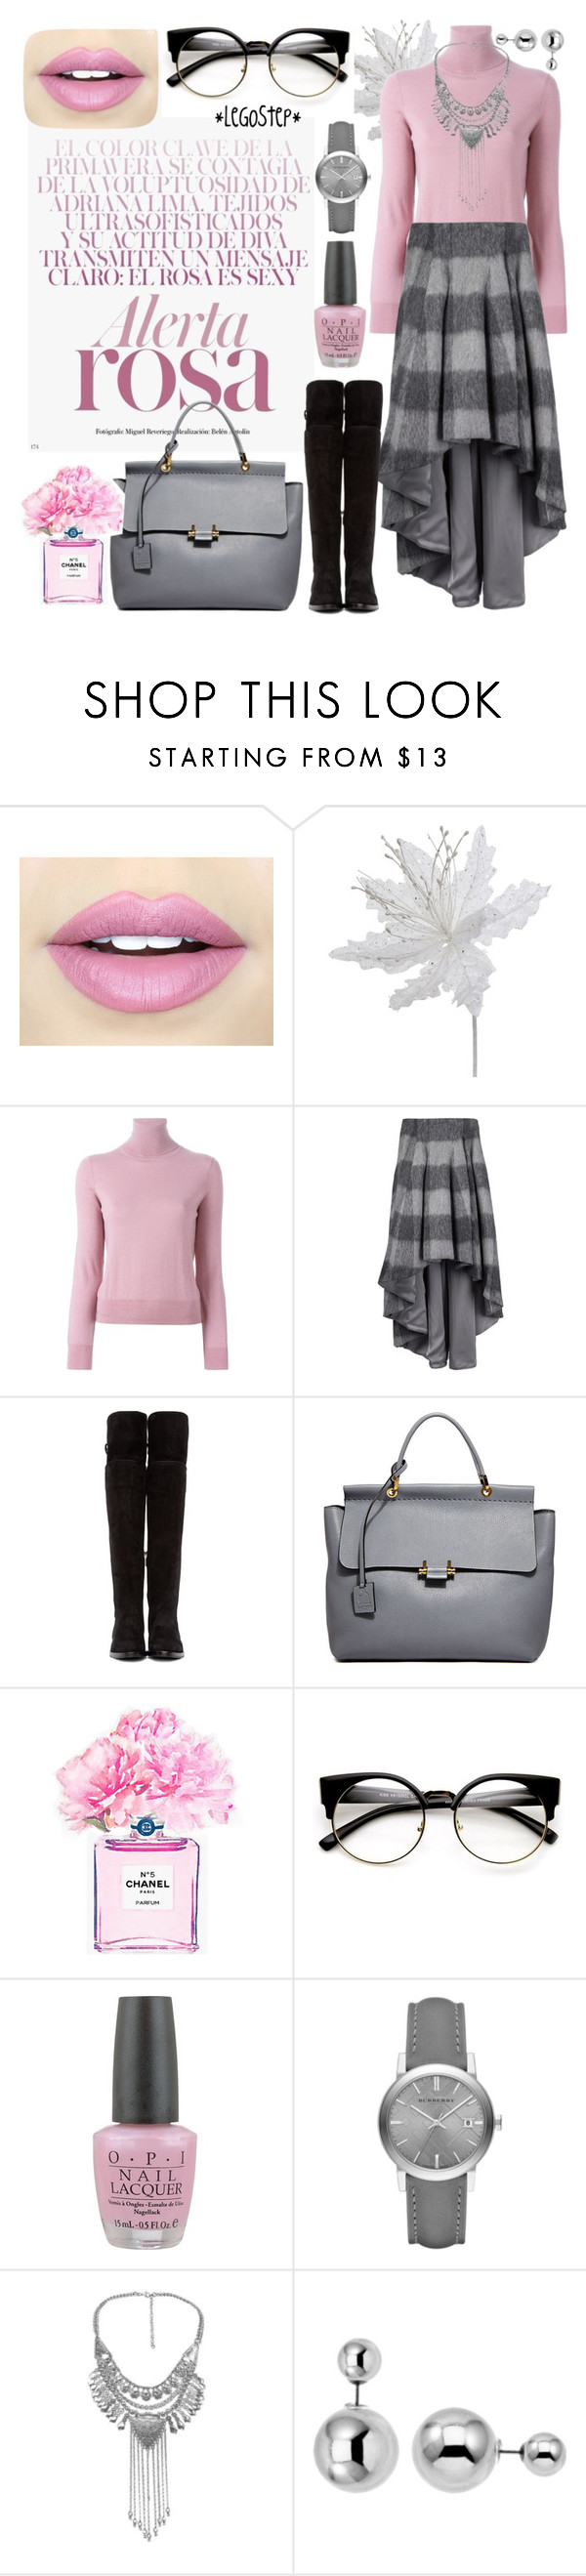 """""""Winter rose"""" by legostep ❤ liked on Polyvore featuring Fiebiger, P.A.R.O.S.H., dominic louis, Dolce&Gabbana, Lanvin, Chanel, OPI, Burberry and Lipsy"""